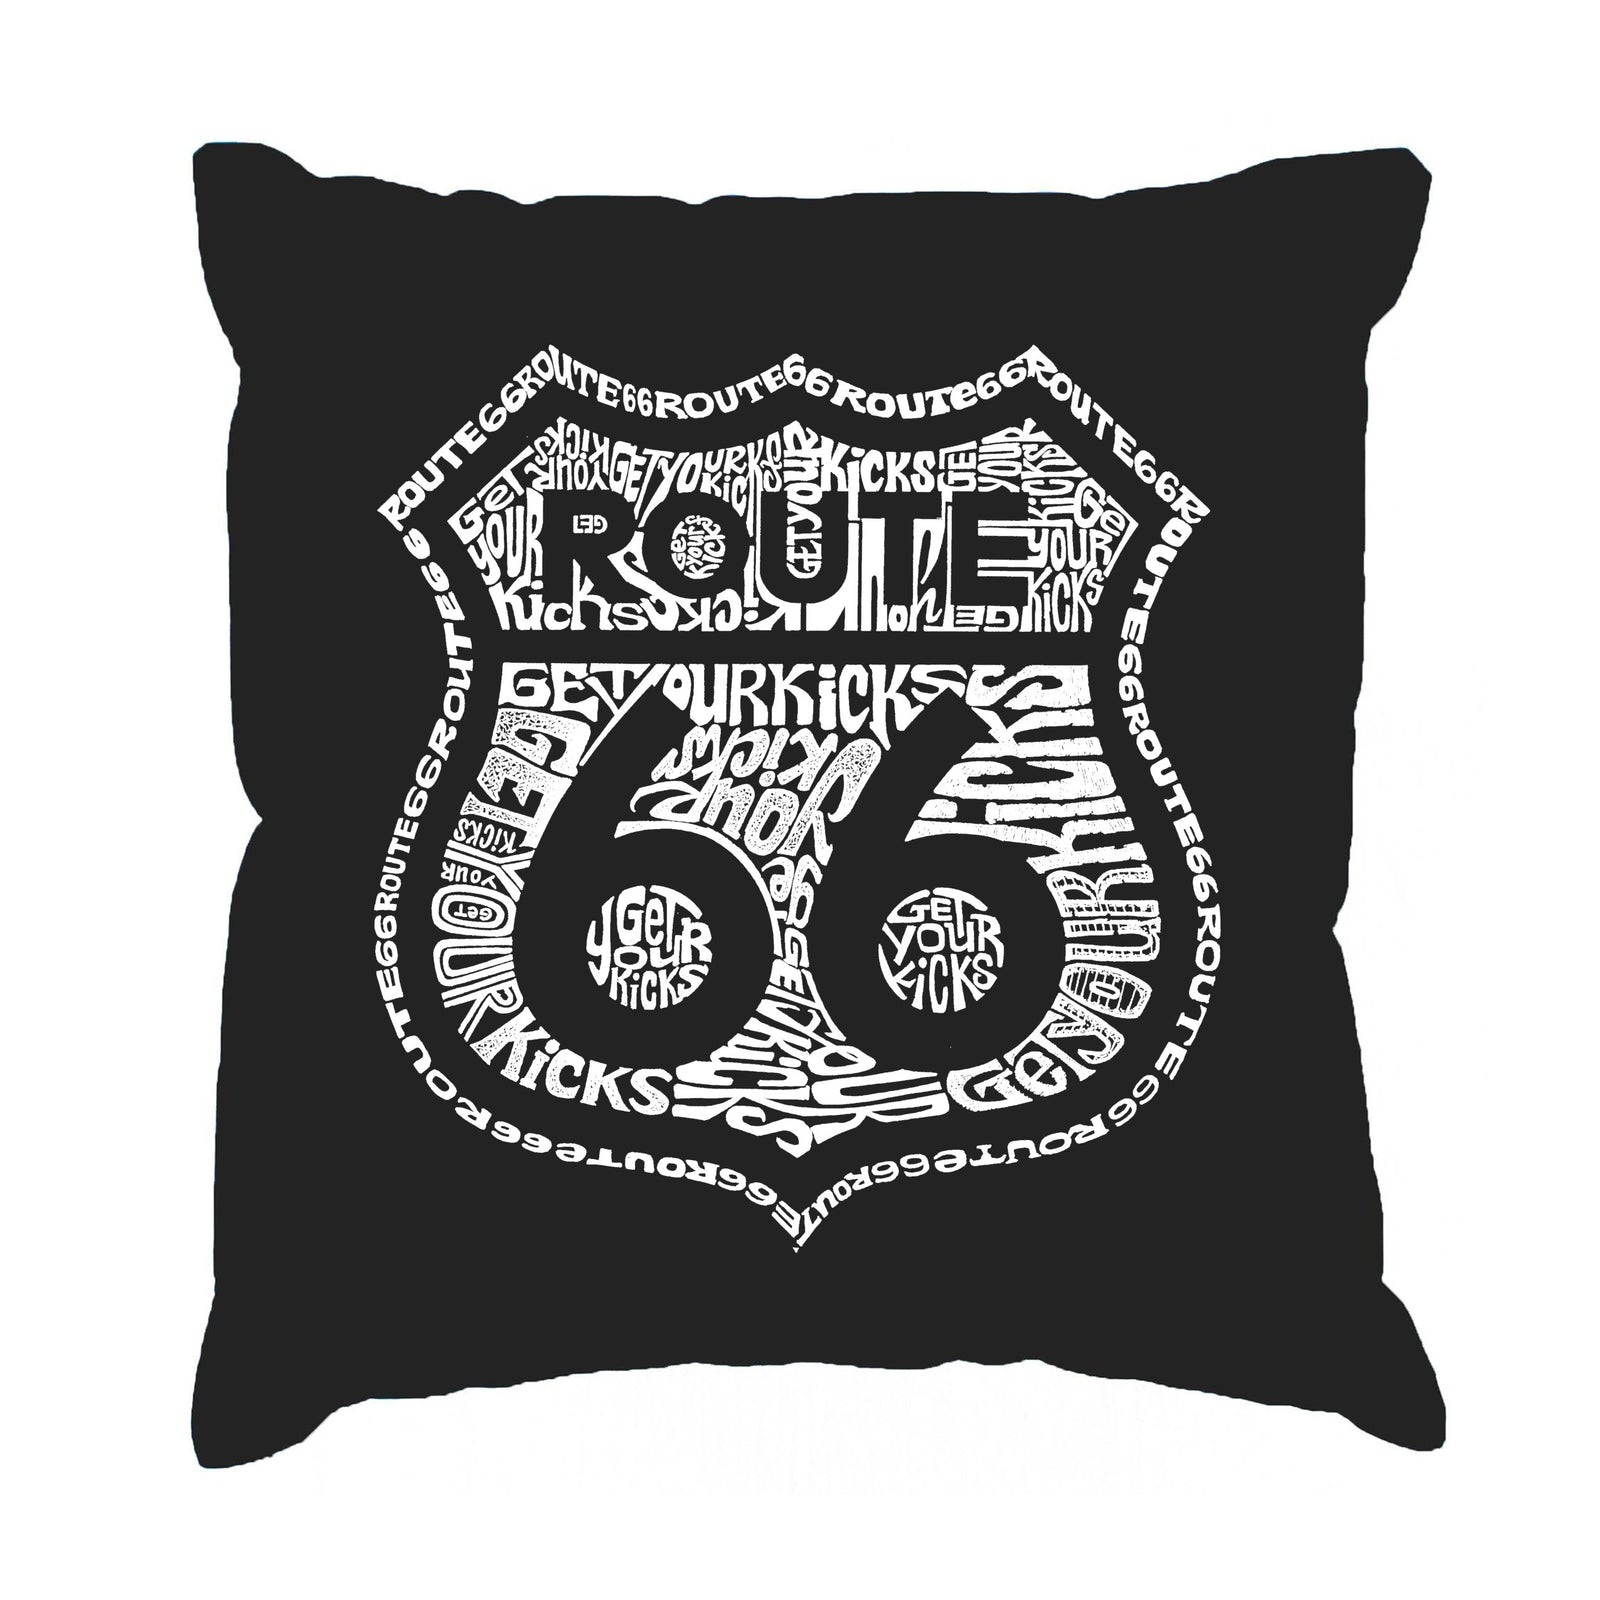 Throw Pillow Cover - Get Your Kicks on Route 66